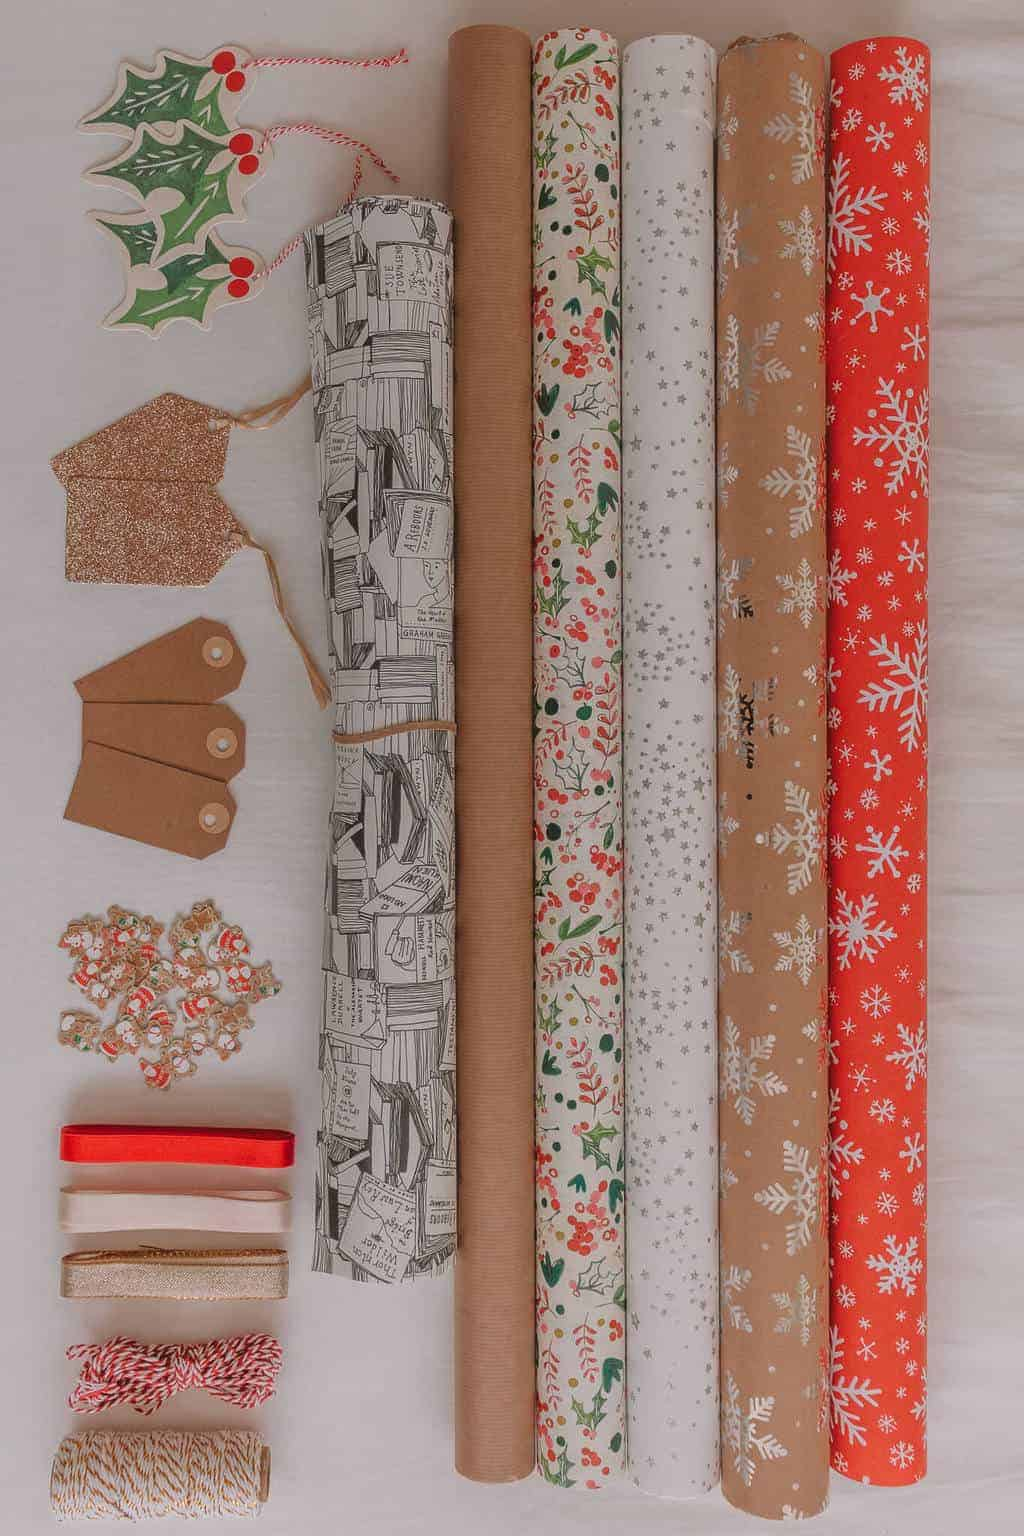 Easy Christmas Gift Wrapping Tutorial with Fresh Flowers